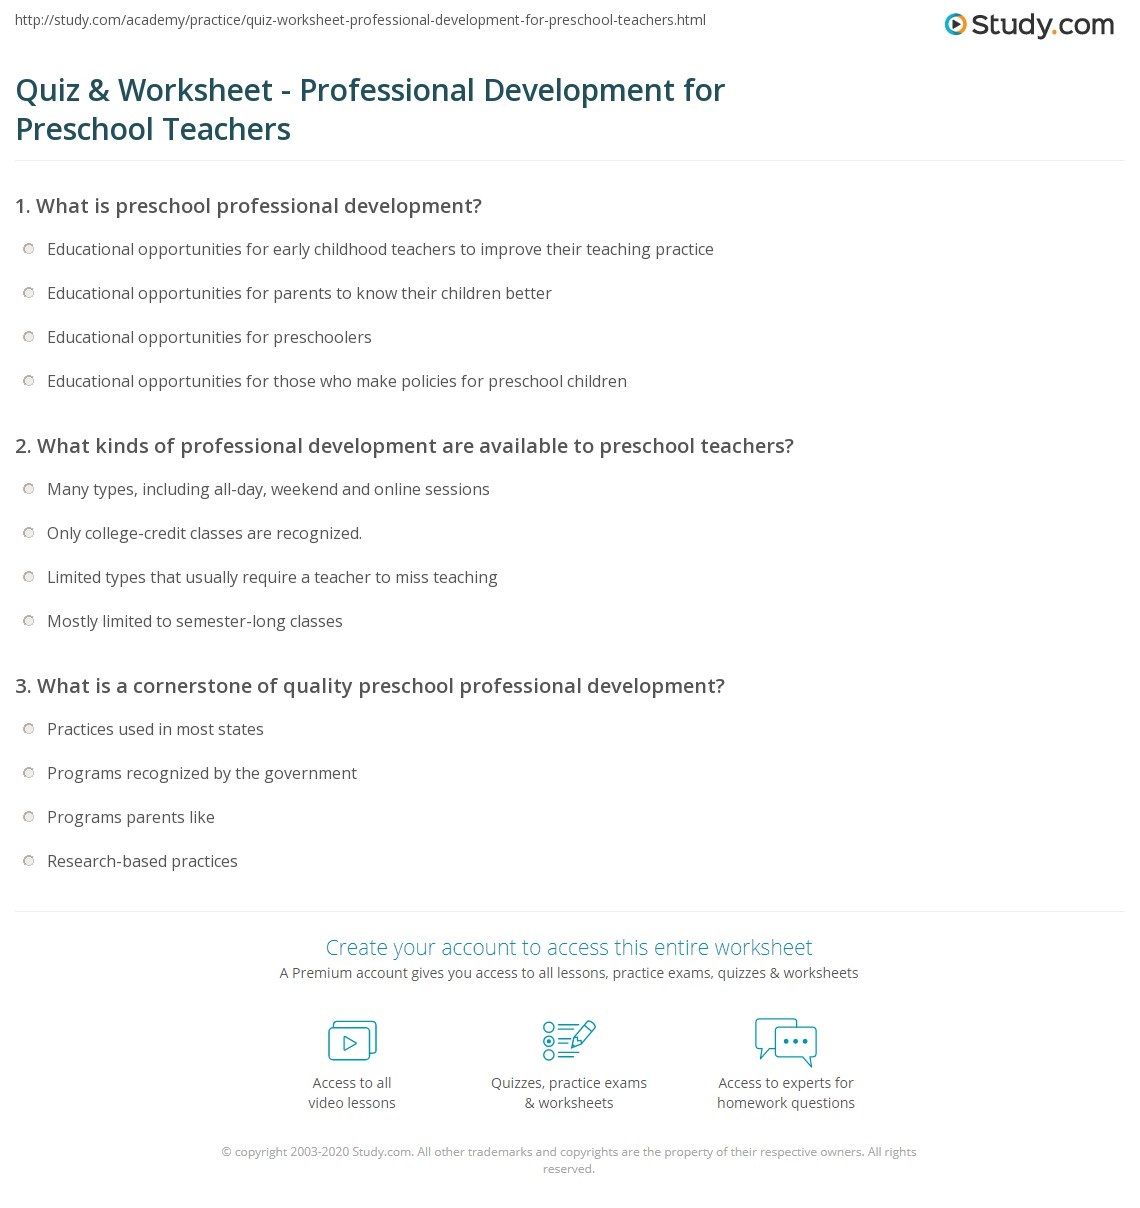 quiz worksheet professional development for preschool teachers print preschool teacher professional development worksheet